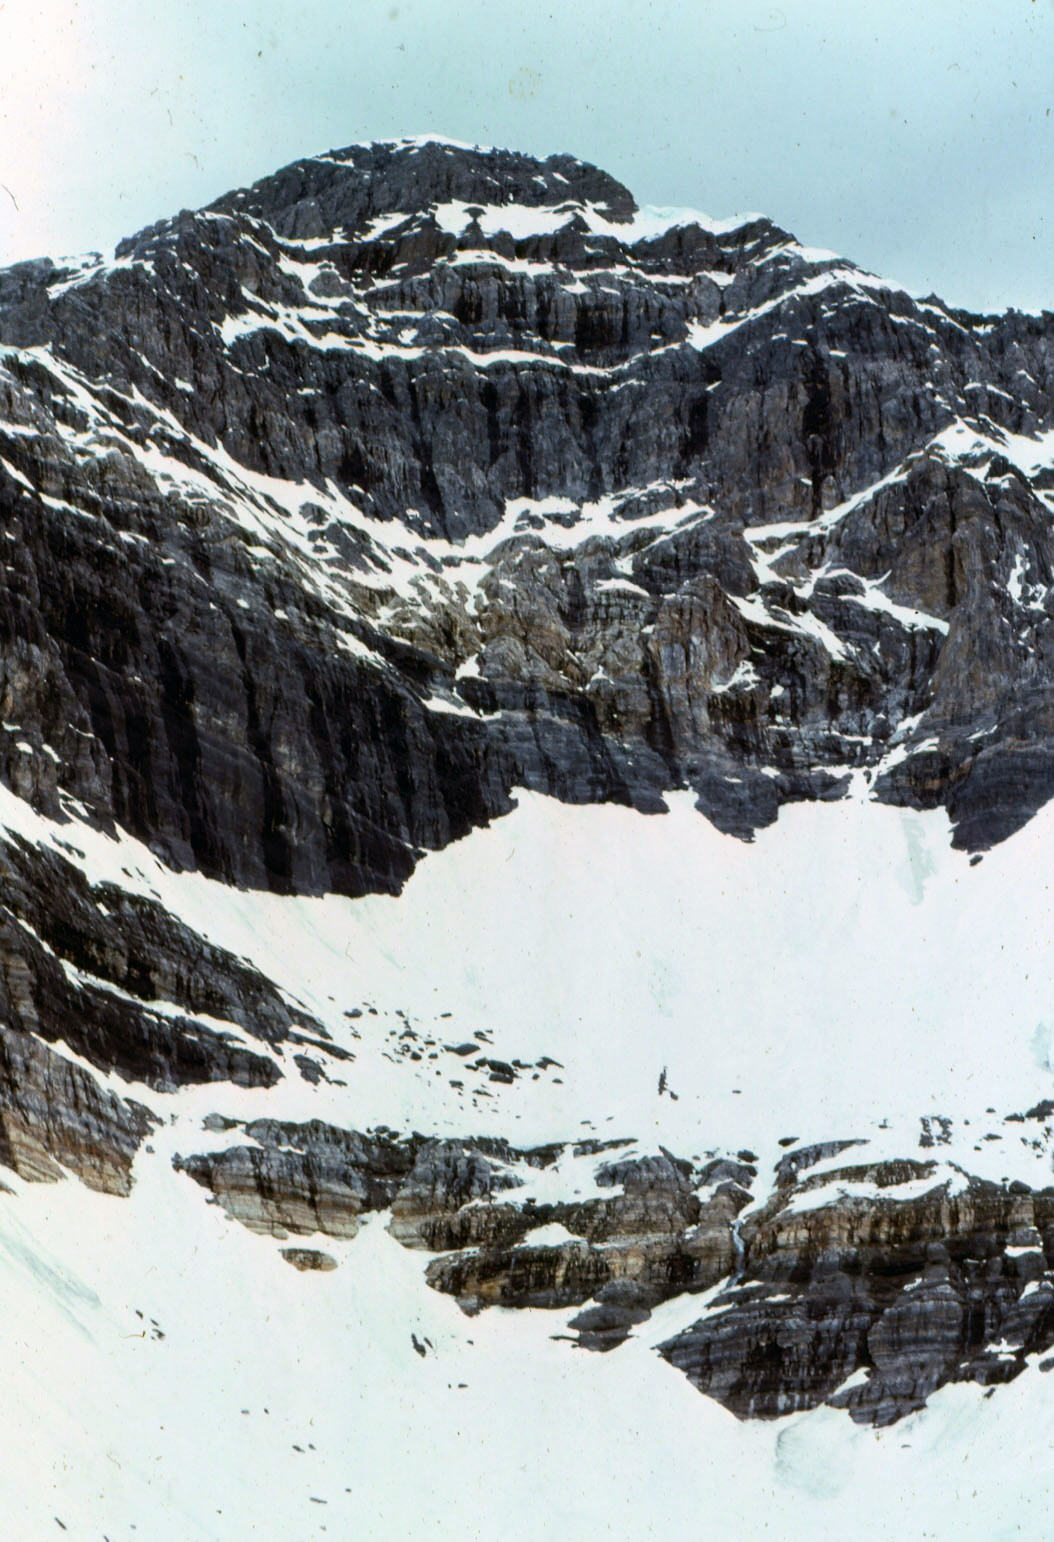 If you look closely, you can see the old blue ice showing in places. Under the snow, the ice appeared to be over 50-feet thick. The East Face of Mount Borah – June 1974. Photo by Bob Boyles